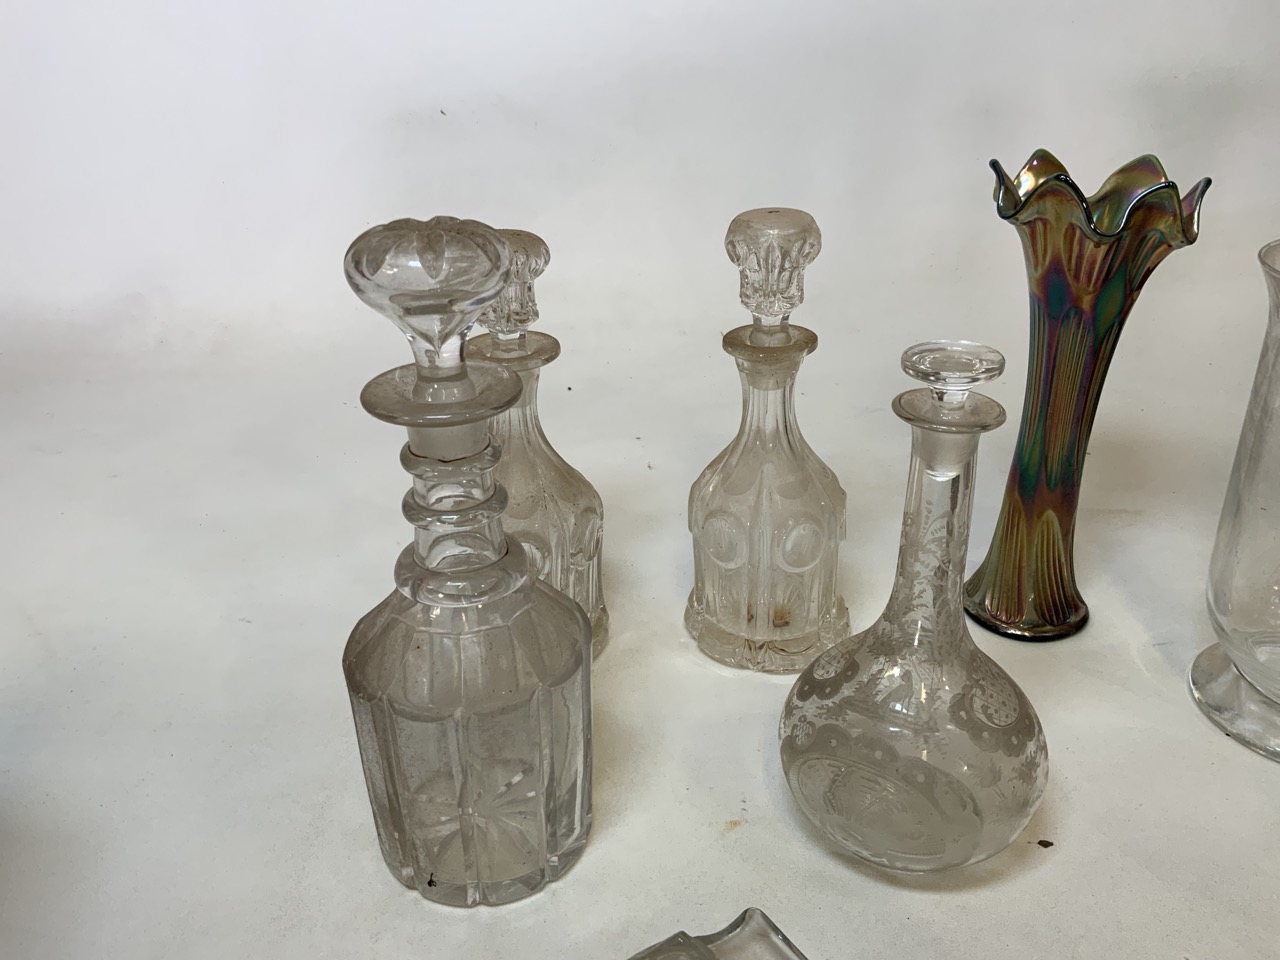 A mixed collection of glass, metal wear and ceramics. To include a brass kettle and a pair of - Image 3 of 6